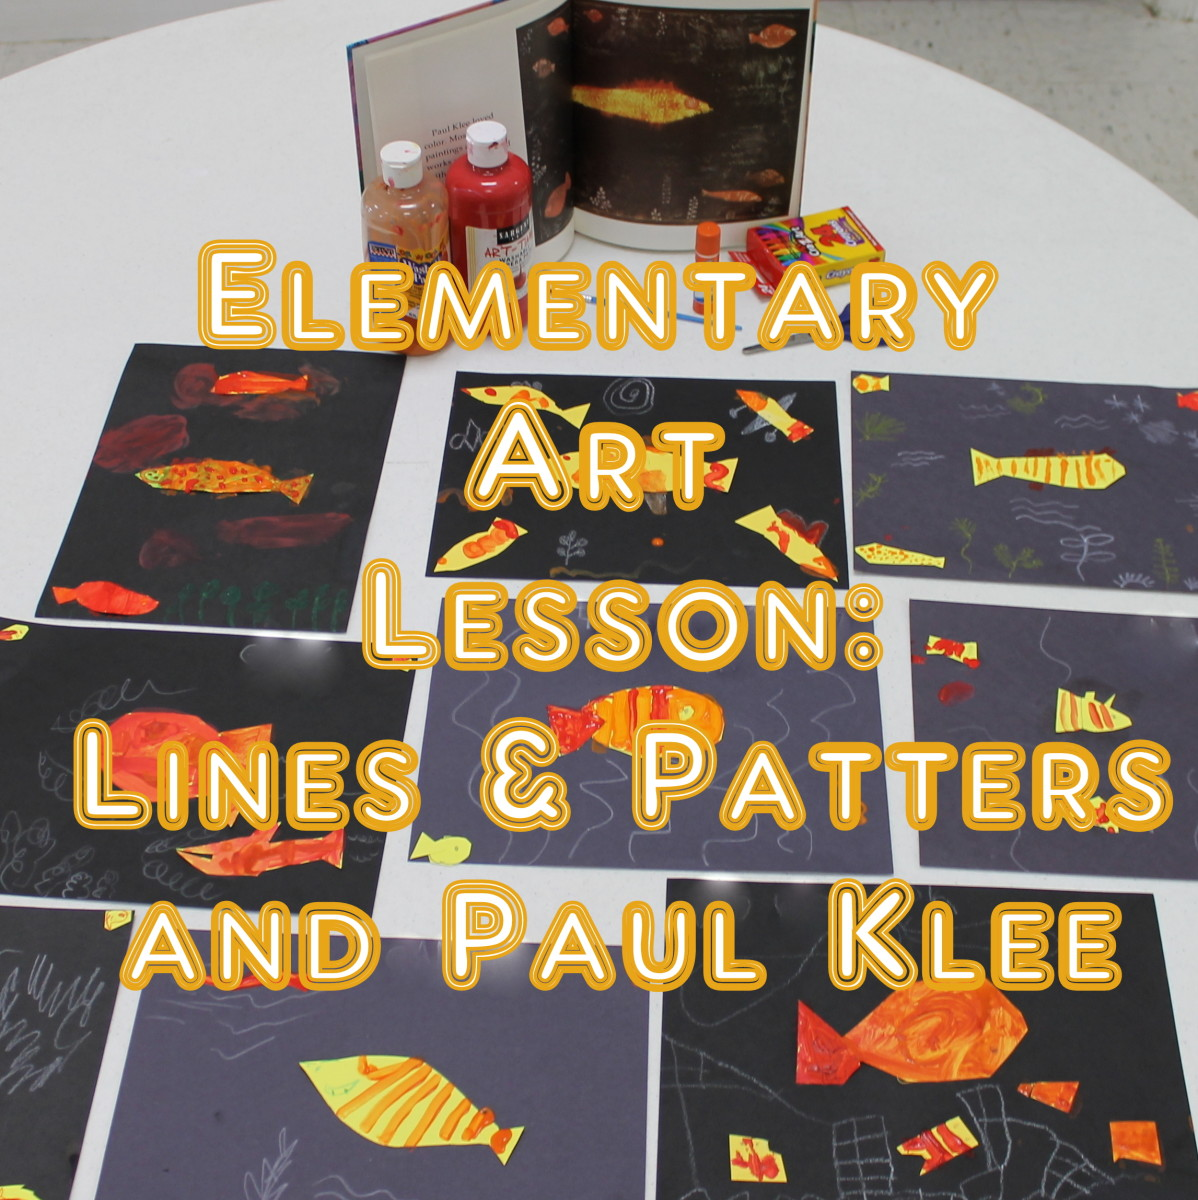 Lines & Patterns and Paul Klee Art Lesson for Early Elementary